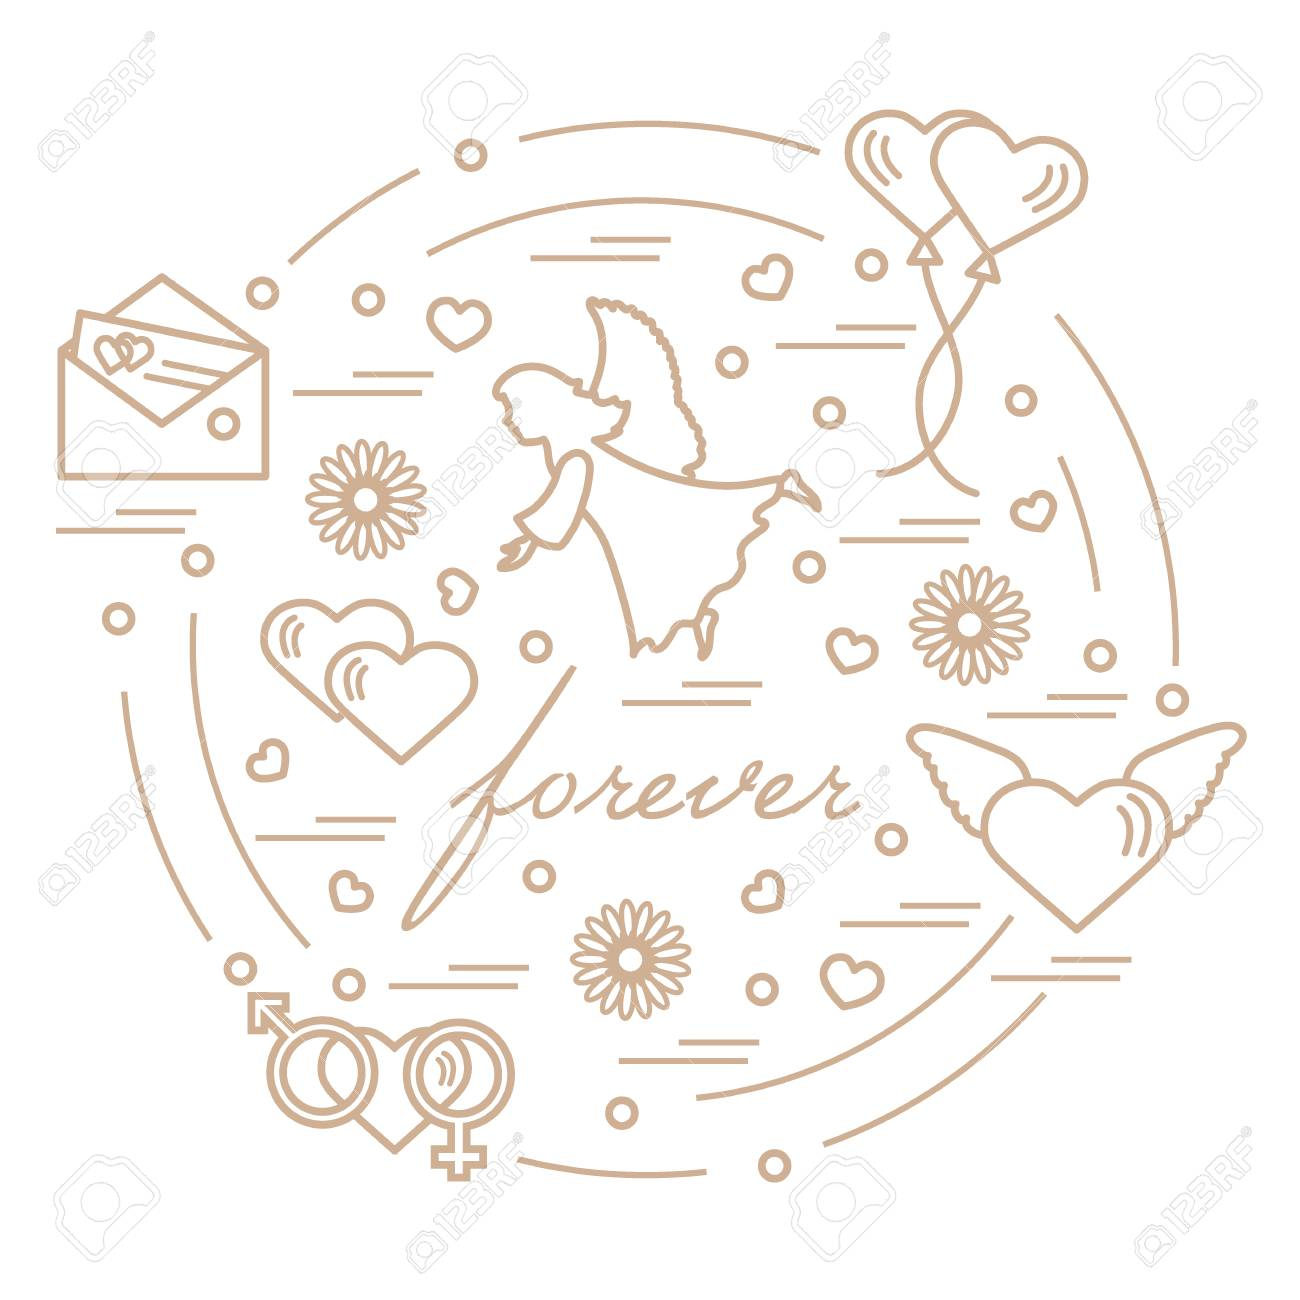 Cute vector illustration with different love symbols hearts cute vector illustration with different love symbols hearts air balloons postal envelope buycottarizona Images